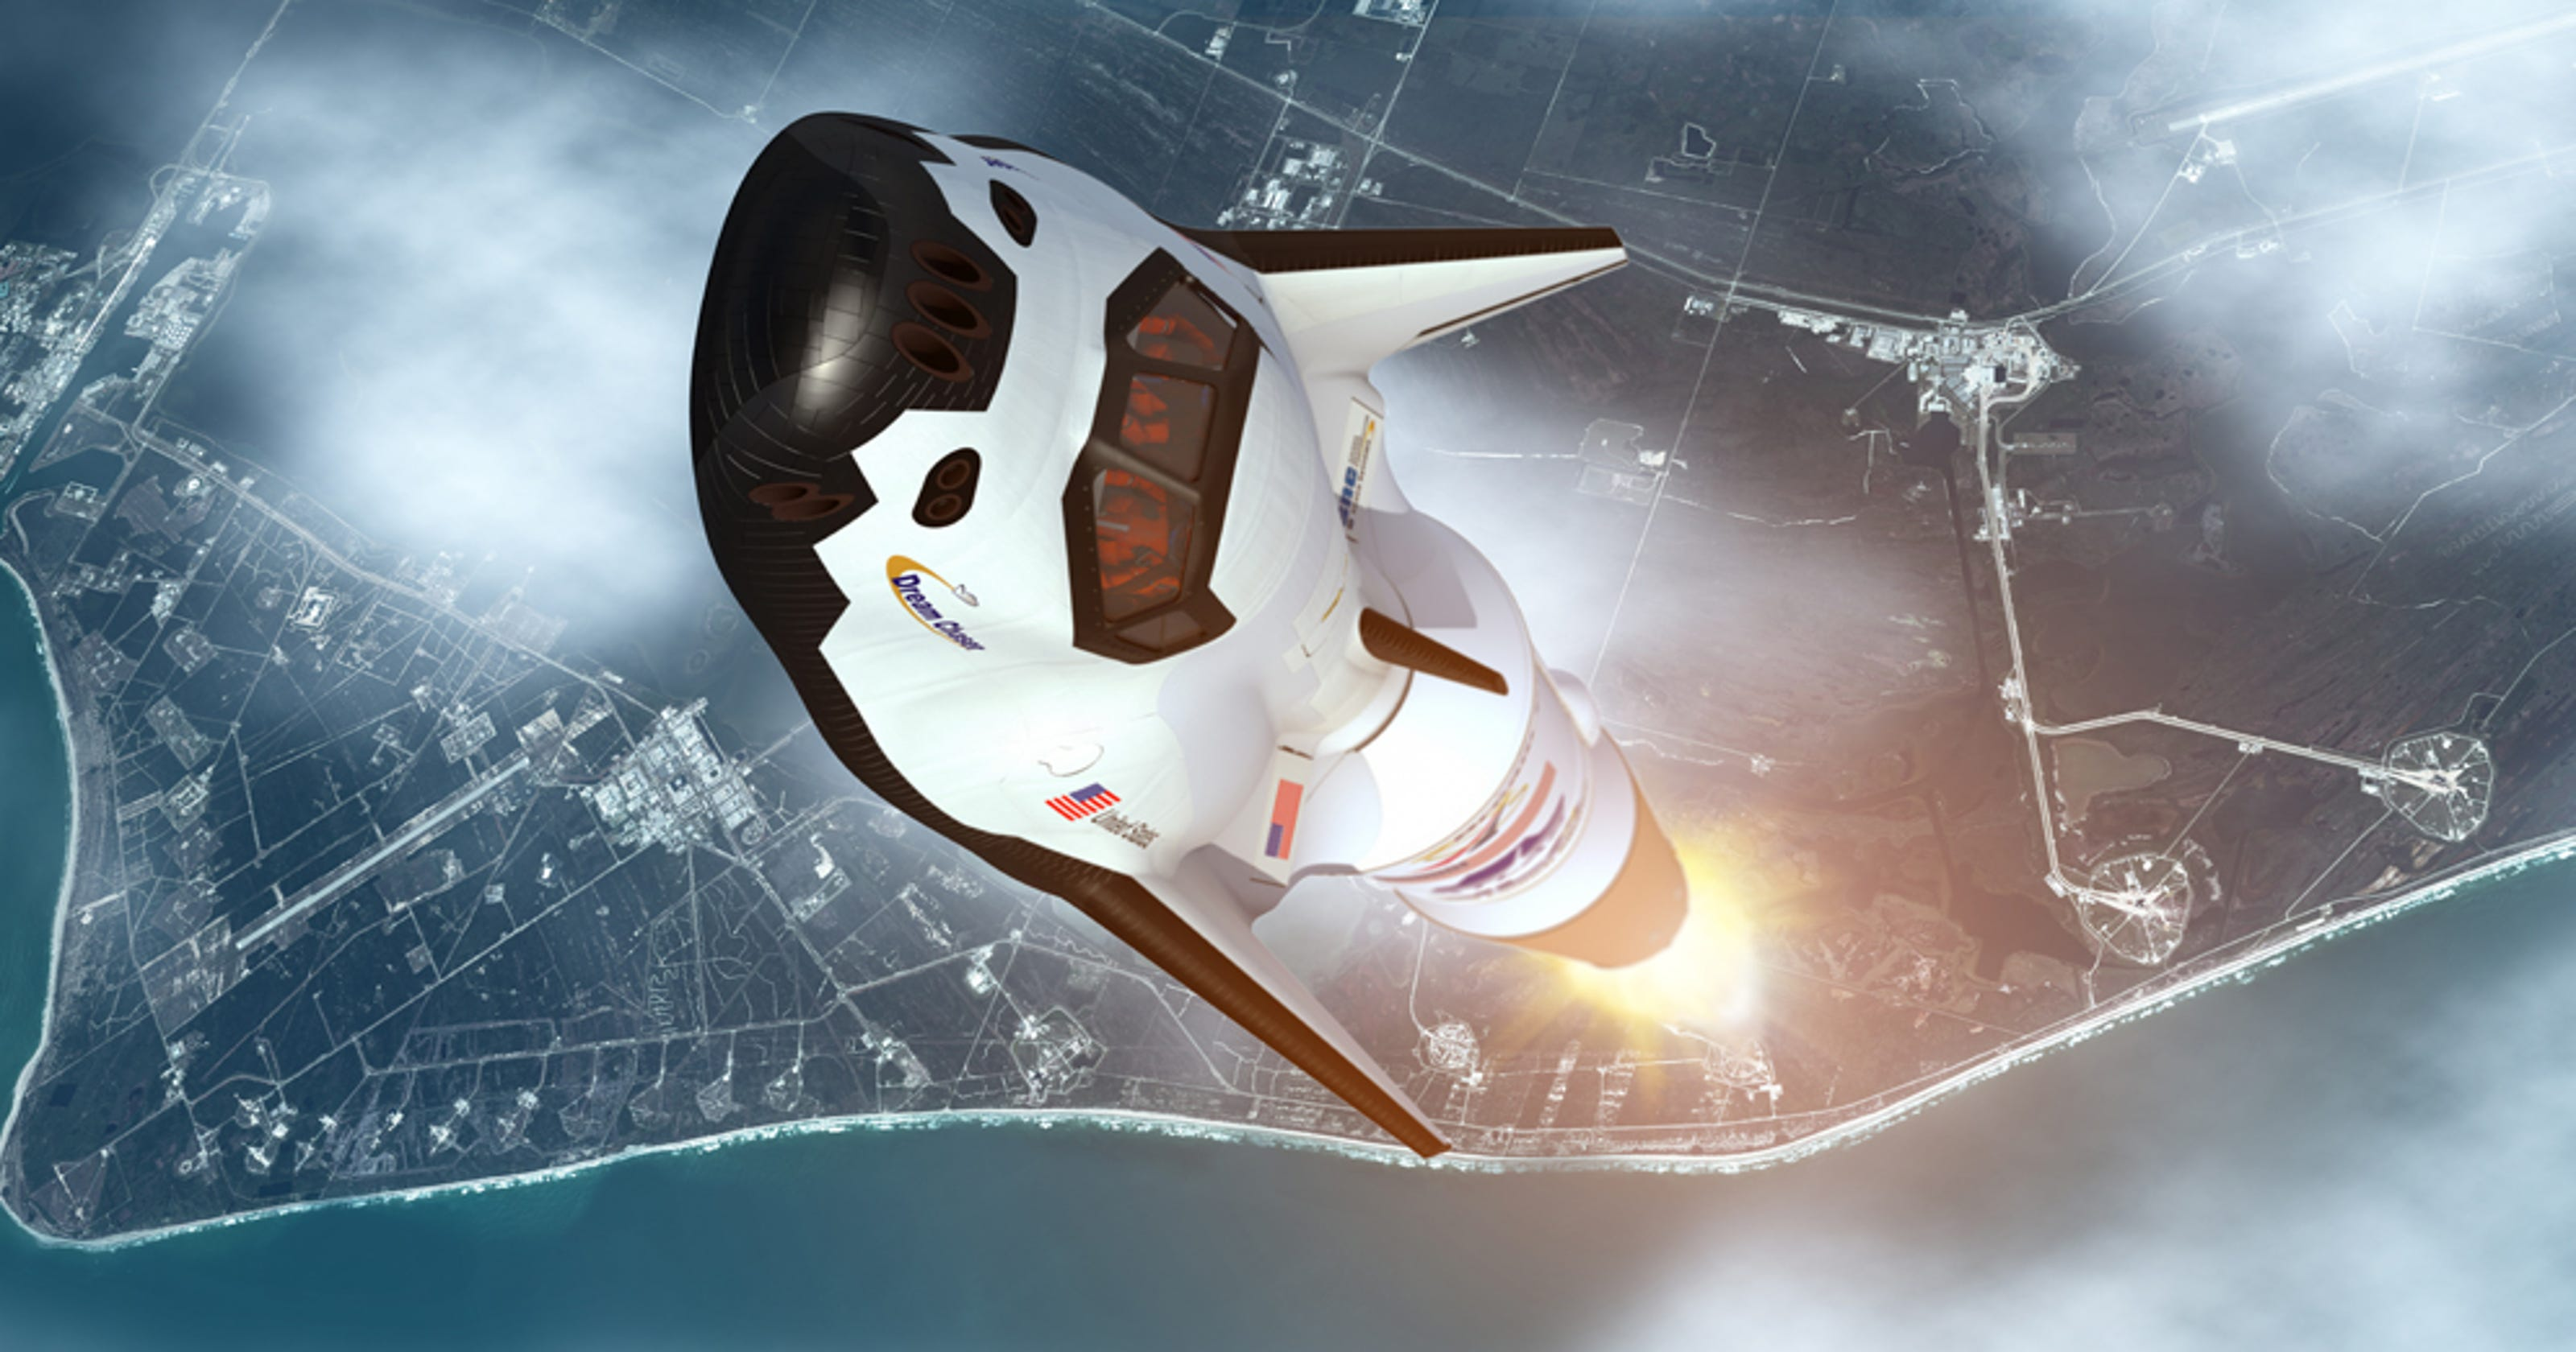 Brevard's Craig Technologies to support Dream Chaser mini-shuttle